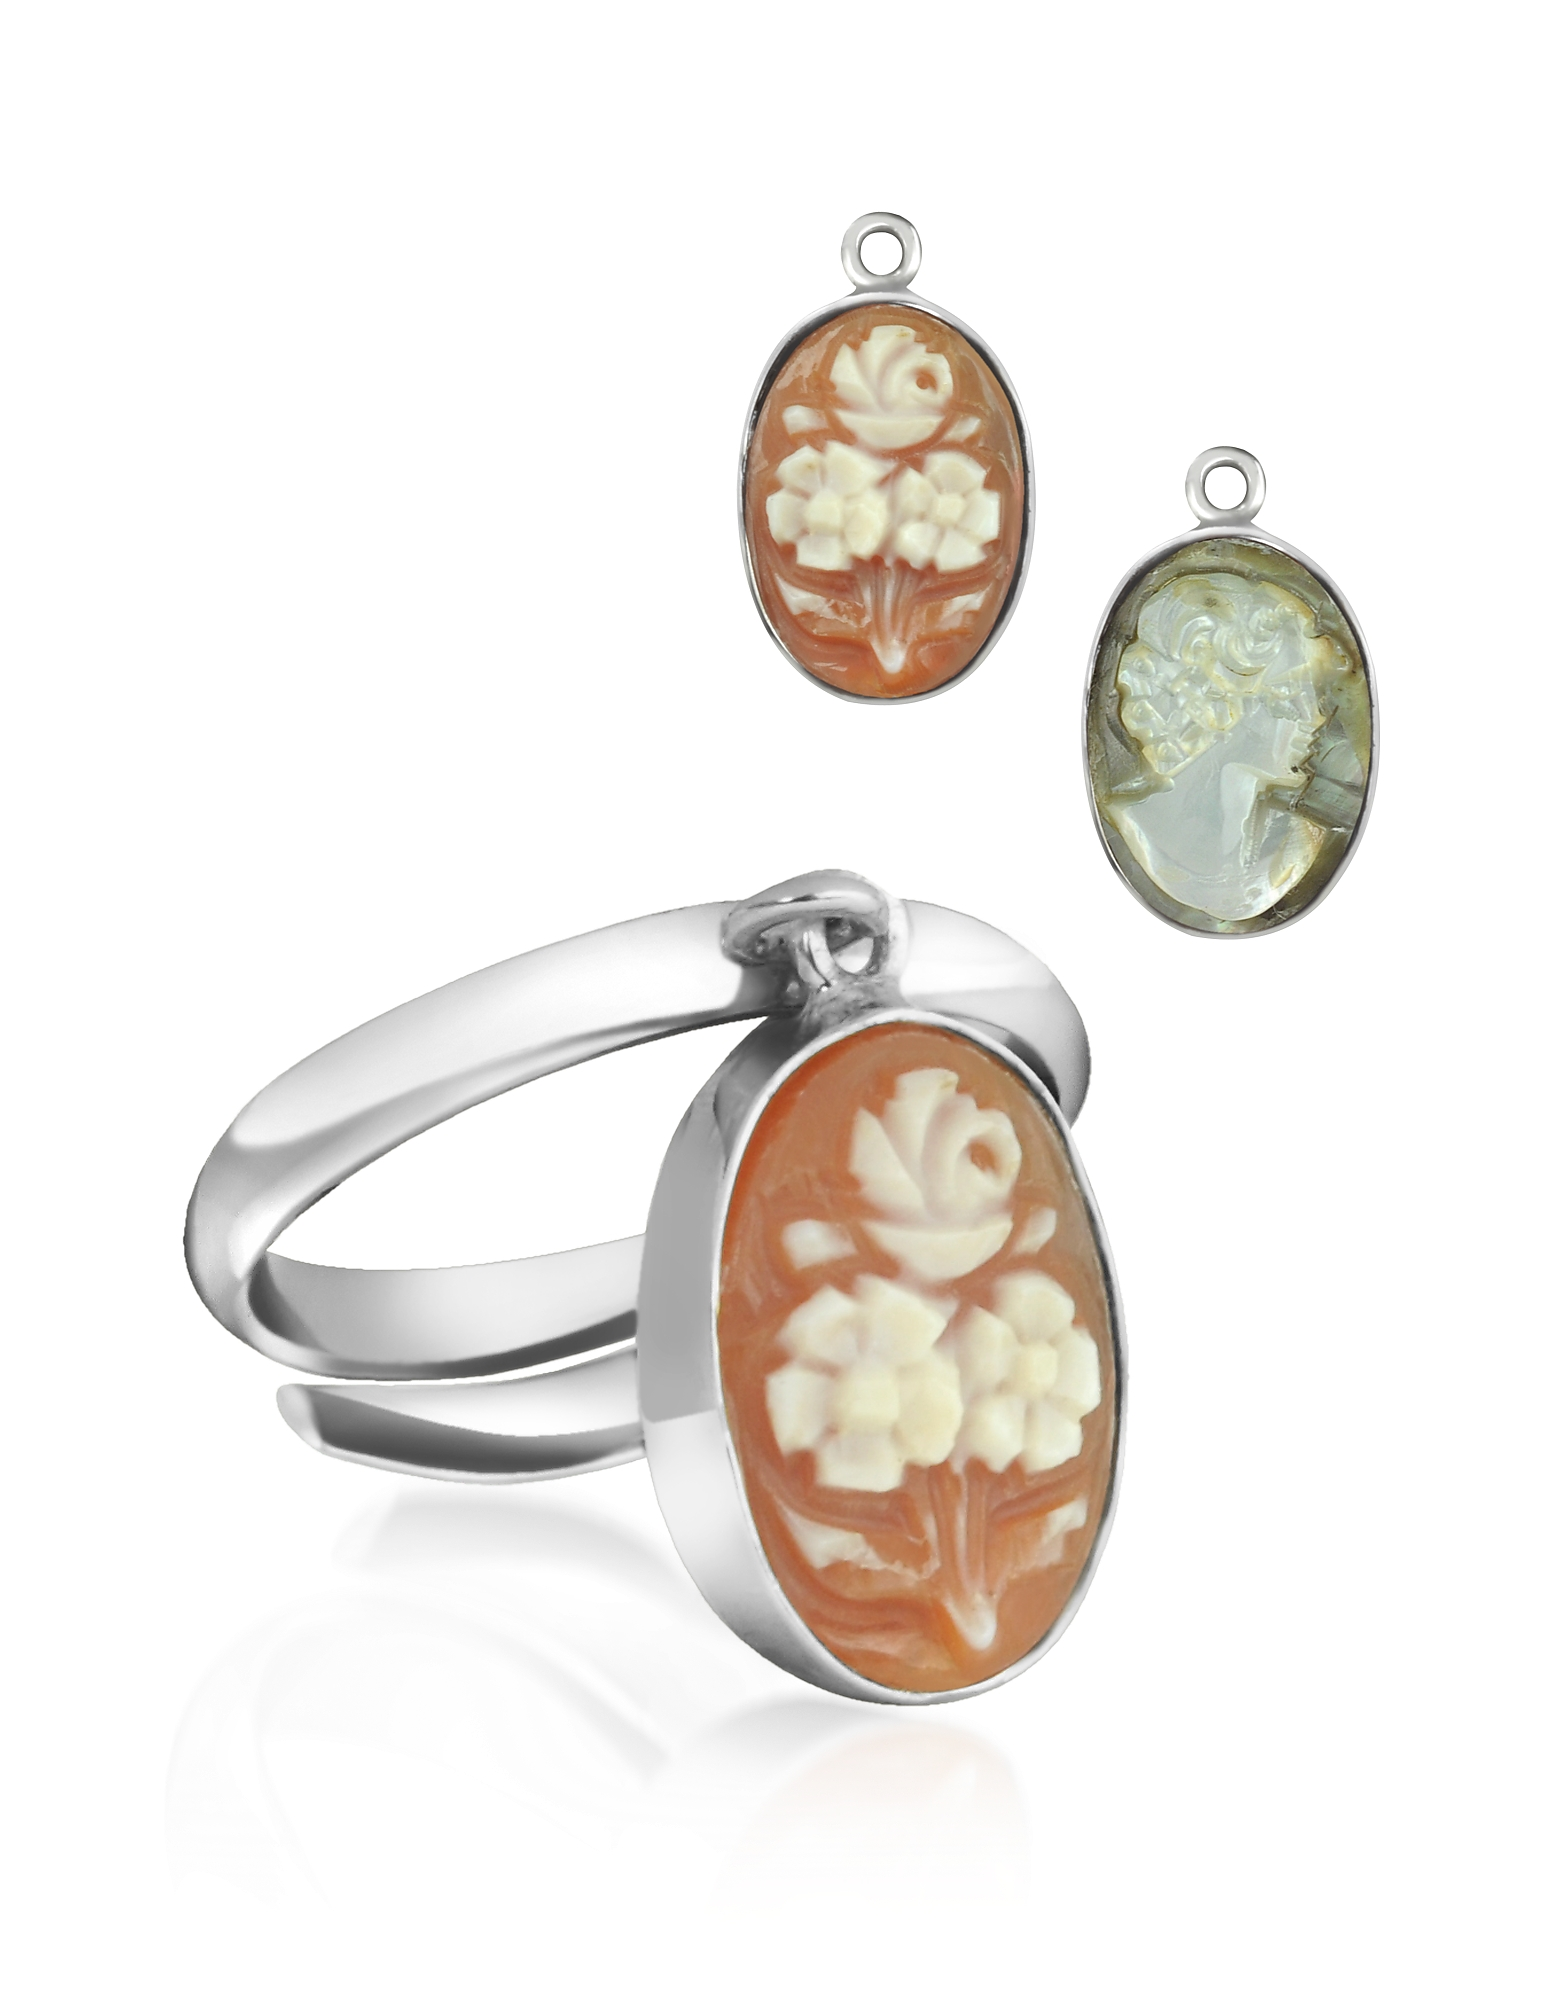 Mia & Beverly Designer Rings, Cameo Charm Ring